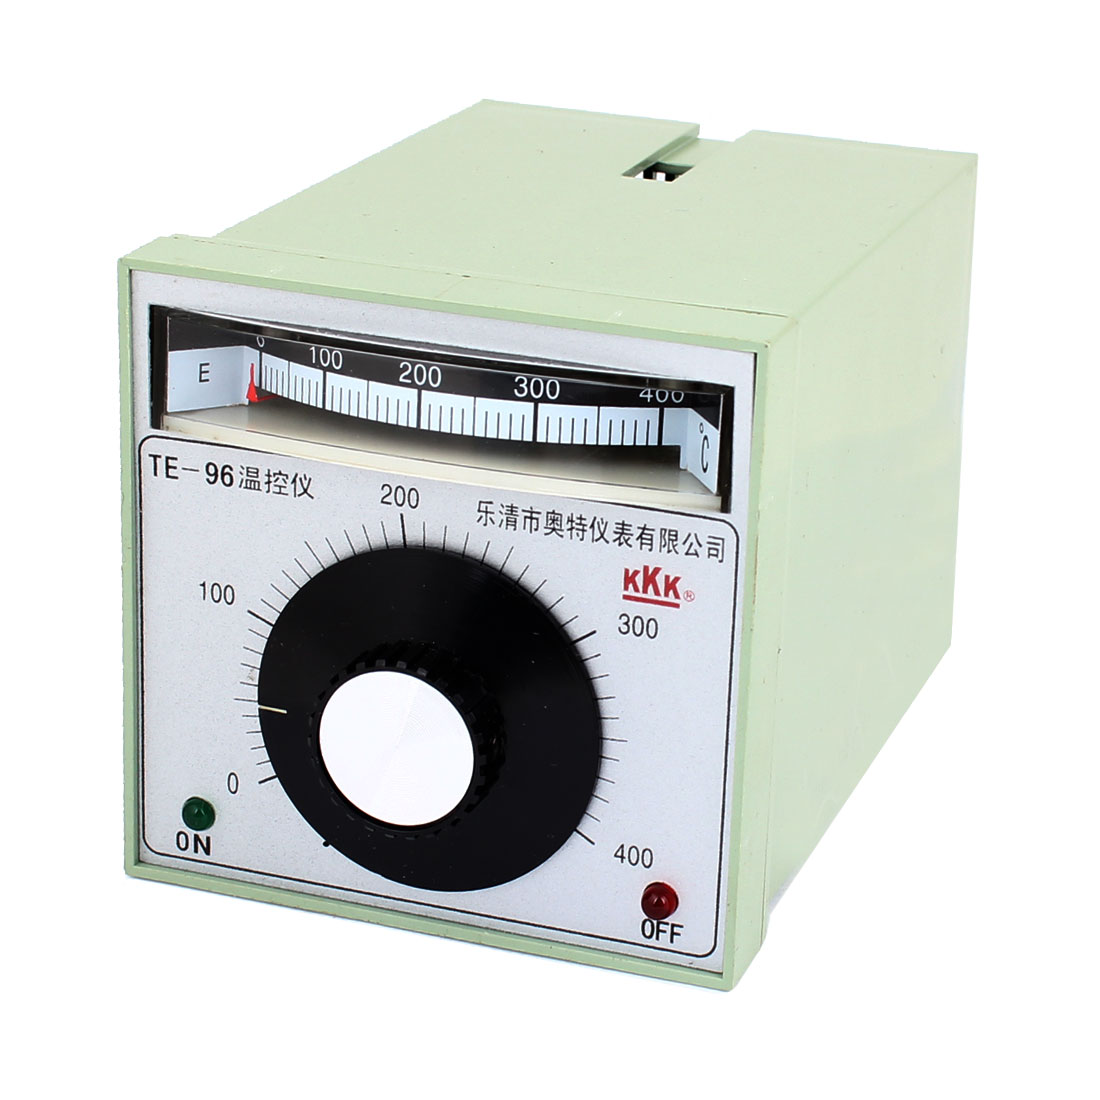 TEA-2001 0-400 Celsius Two-phase Style Temperature Control Controller Light Green